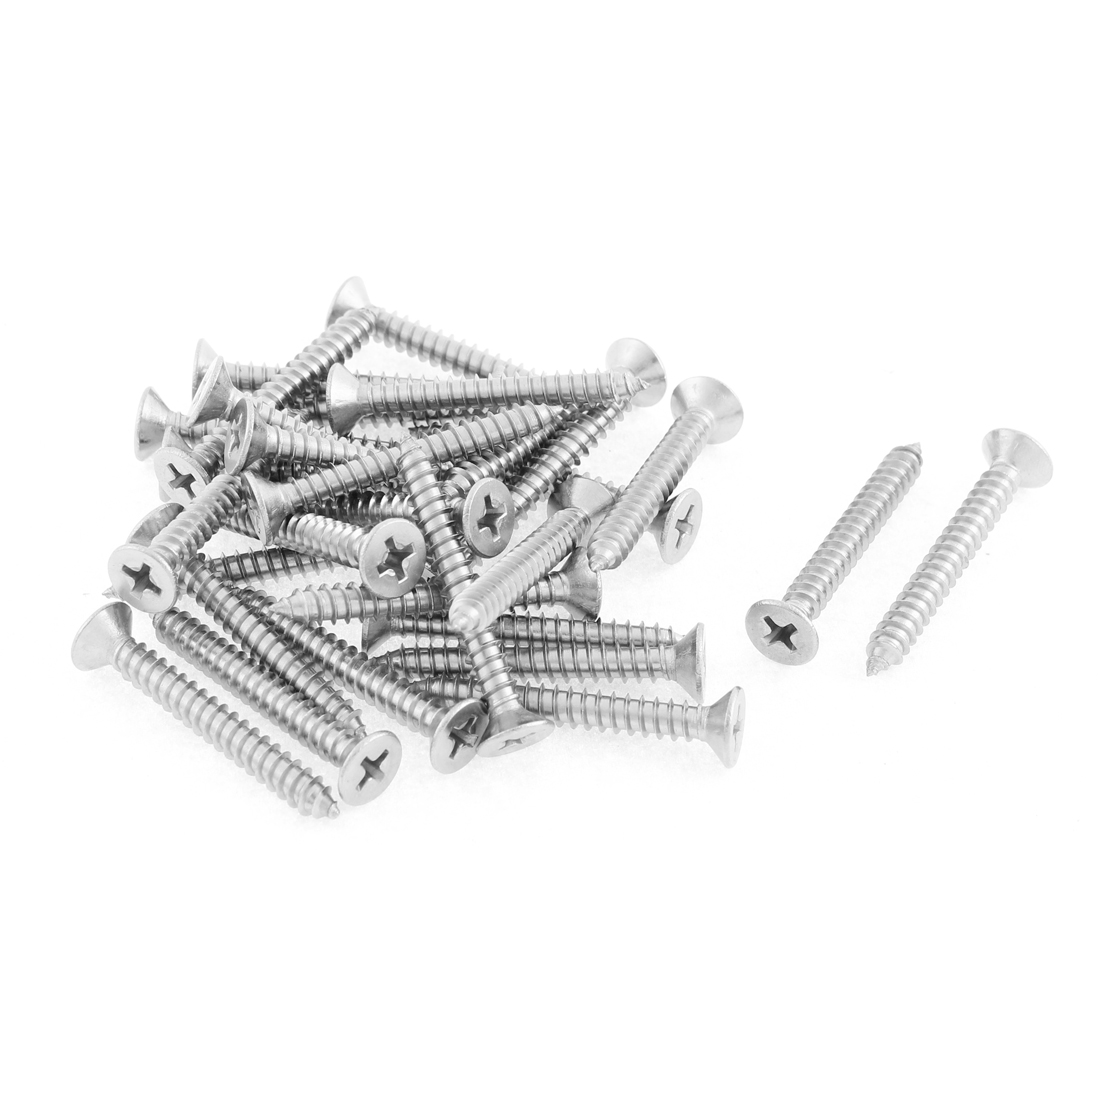 30 Pcs 4.8mmx38mm Stainless Steel Phillips Flat Head Sheet Self Tapping Screws